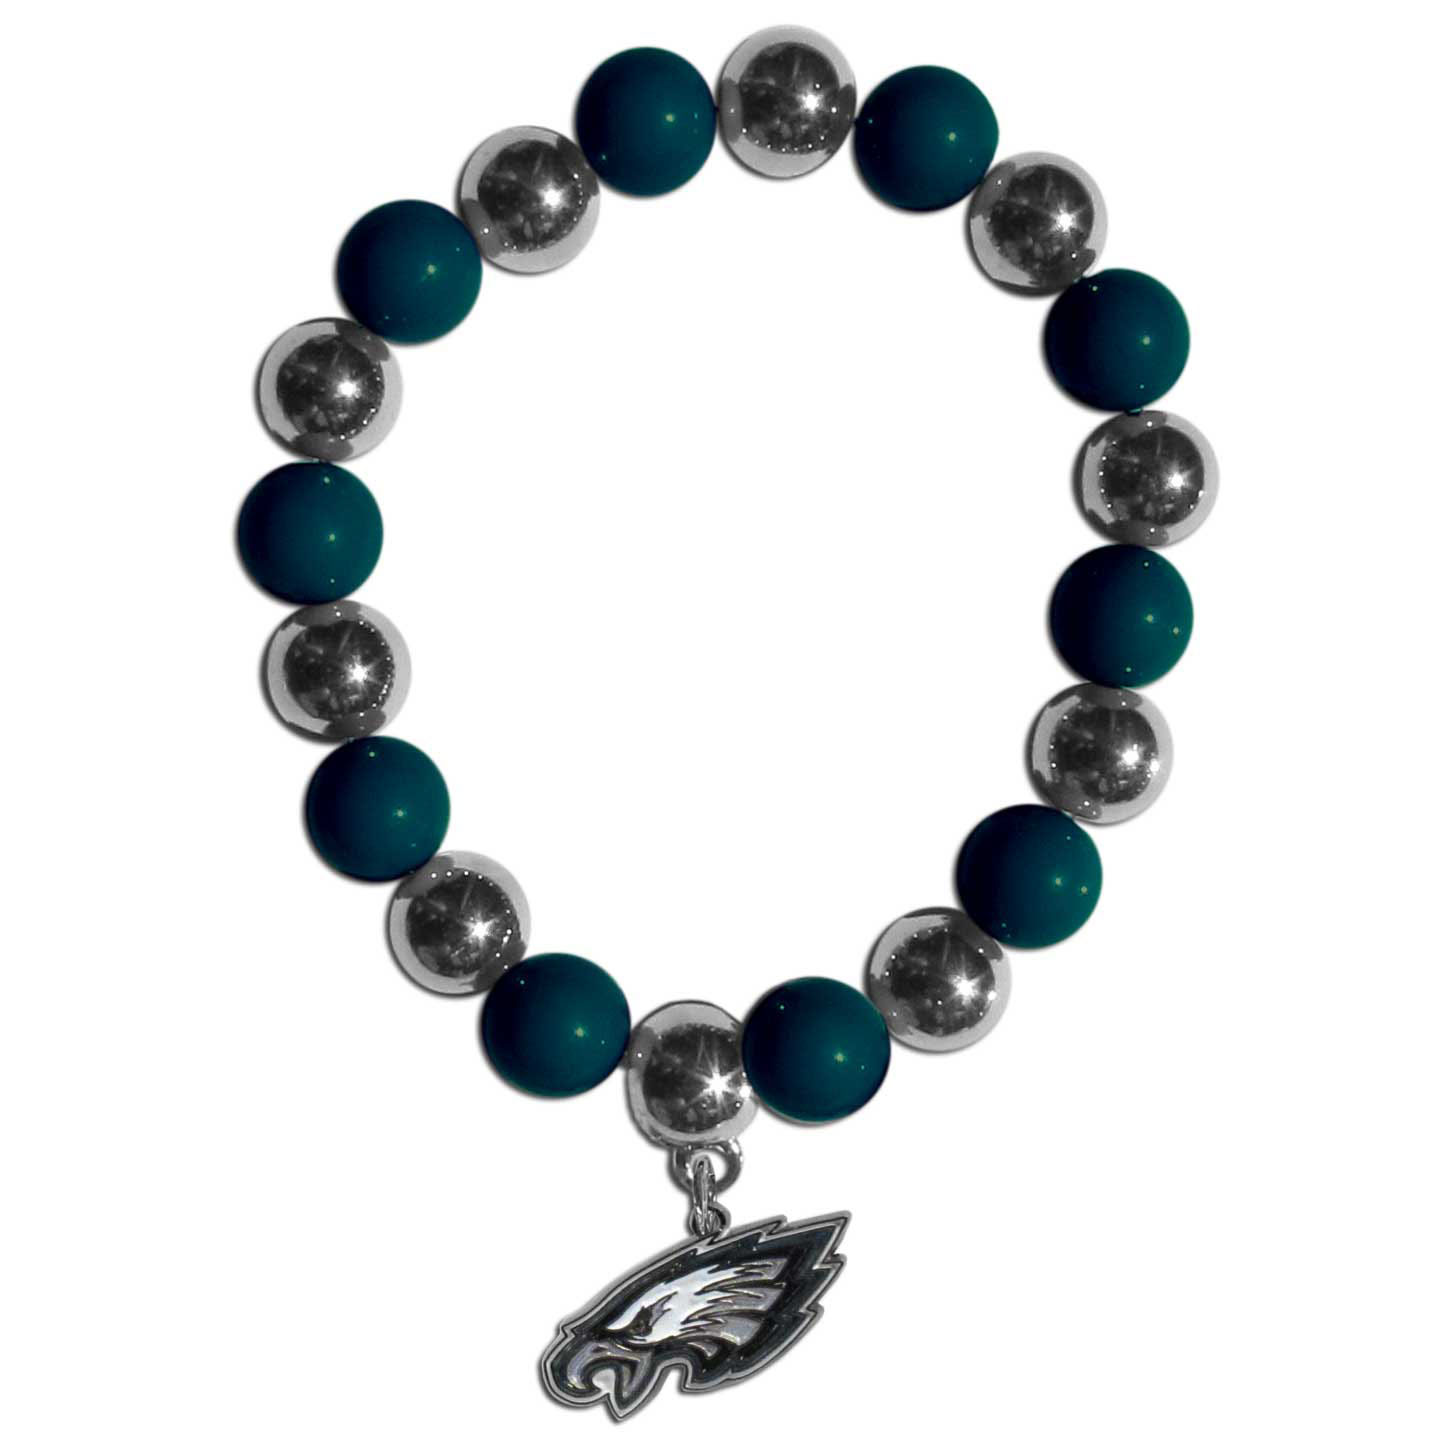 Philadelphia Eagles Chrome Bead Bracelet - Flash your Philadelphia Eagles spirit with this bright stretch bracelet. This new bracelet features alternating charm & team beads on stretch cord with a nickel-free enameled chrome team charm. This bracelet adds the perfect pop of color to your game day accessories.